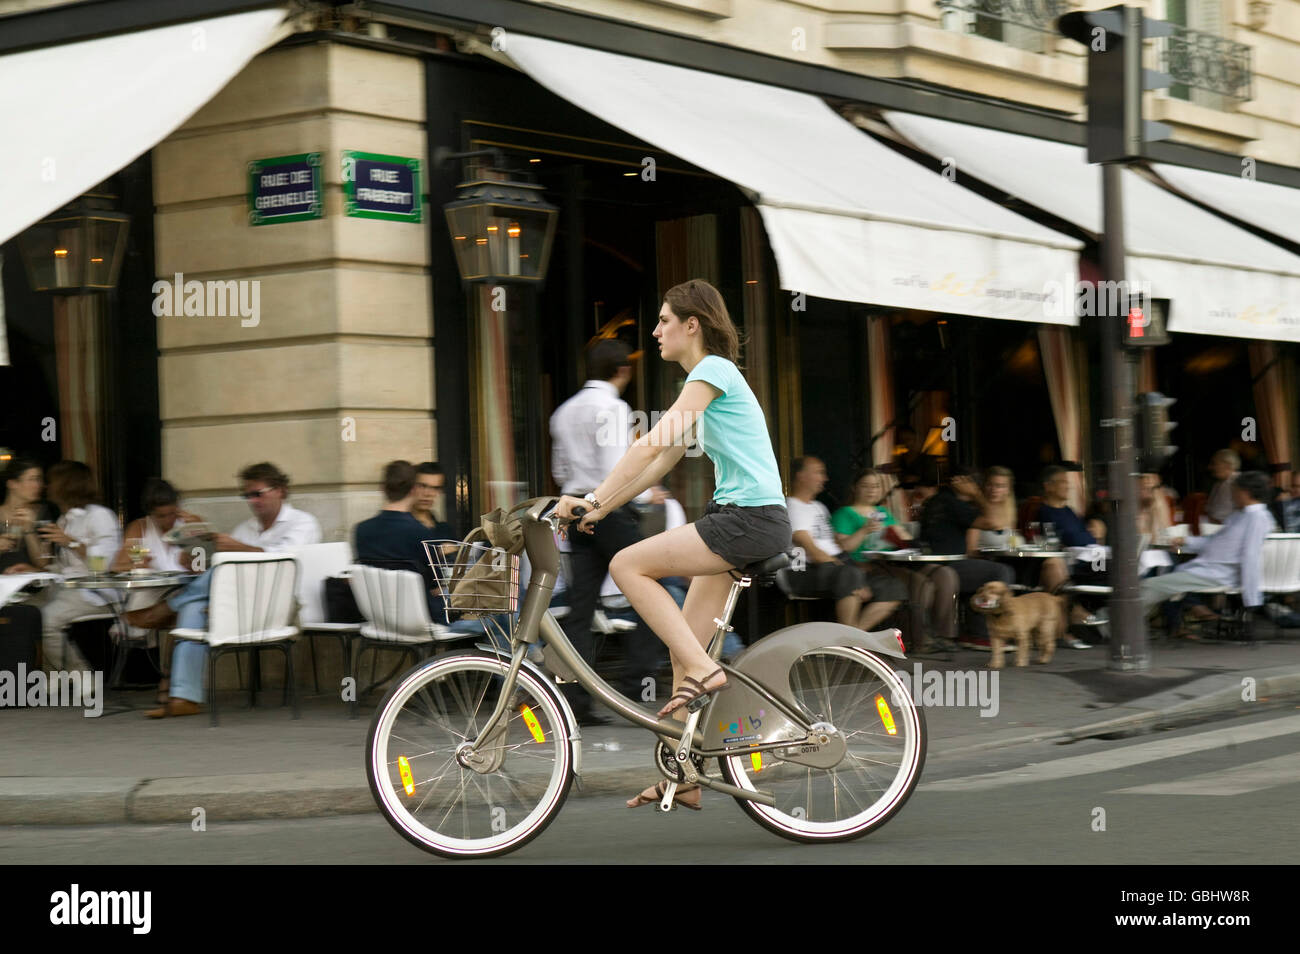 A woman rides a Velib' bicycle past a café terrace in Paris, France, 15th July 2007. - Stock Image